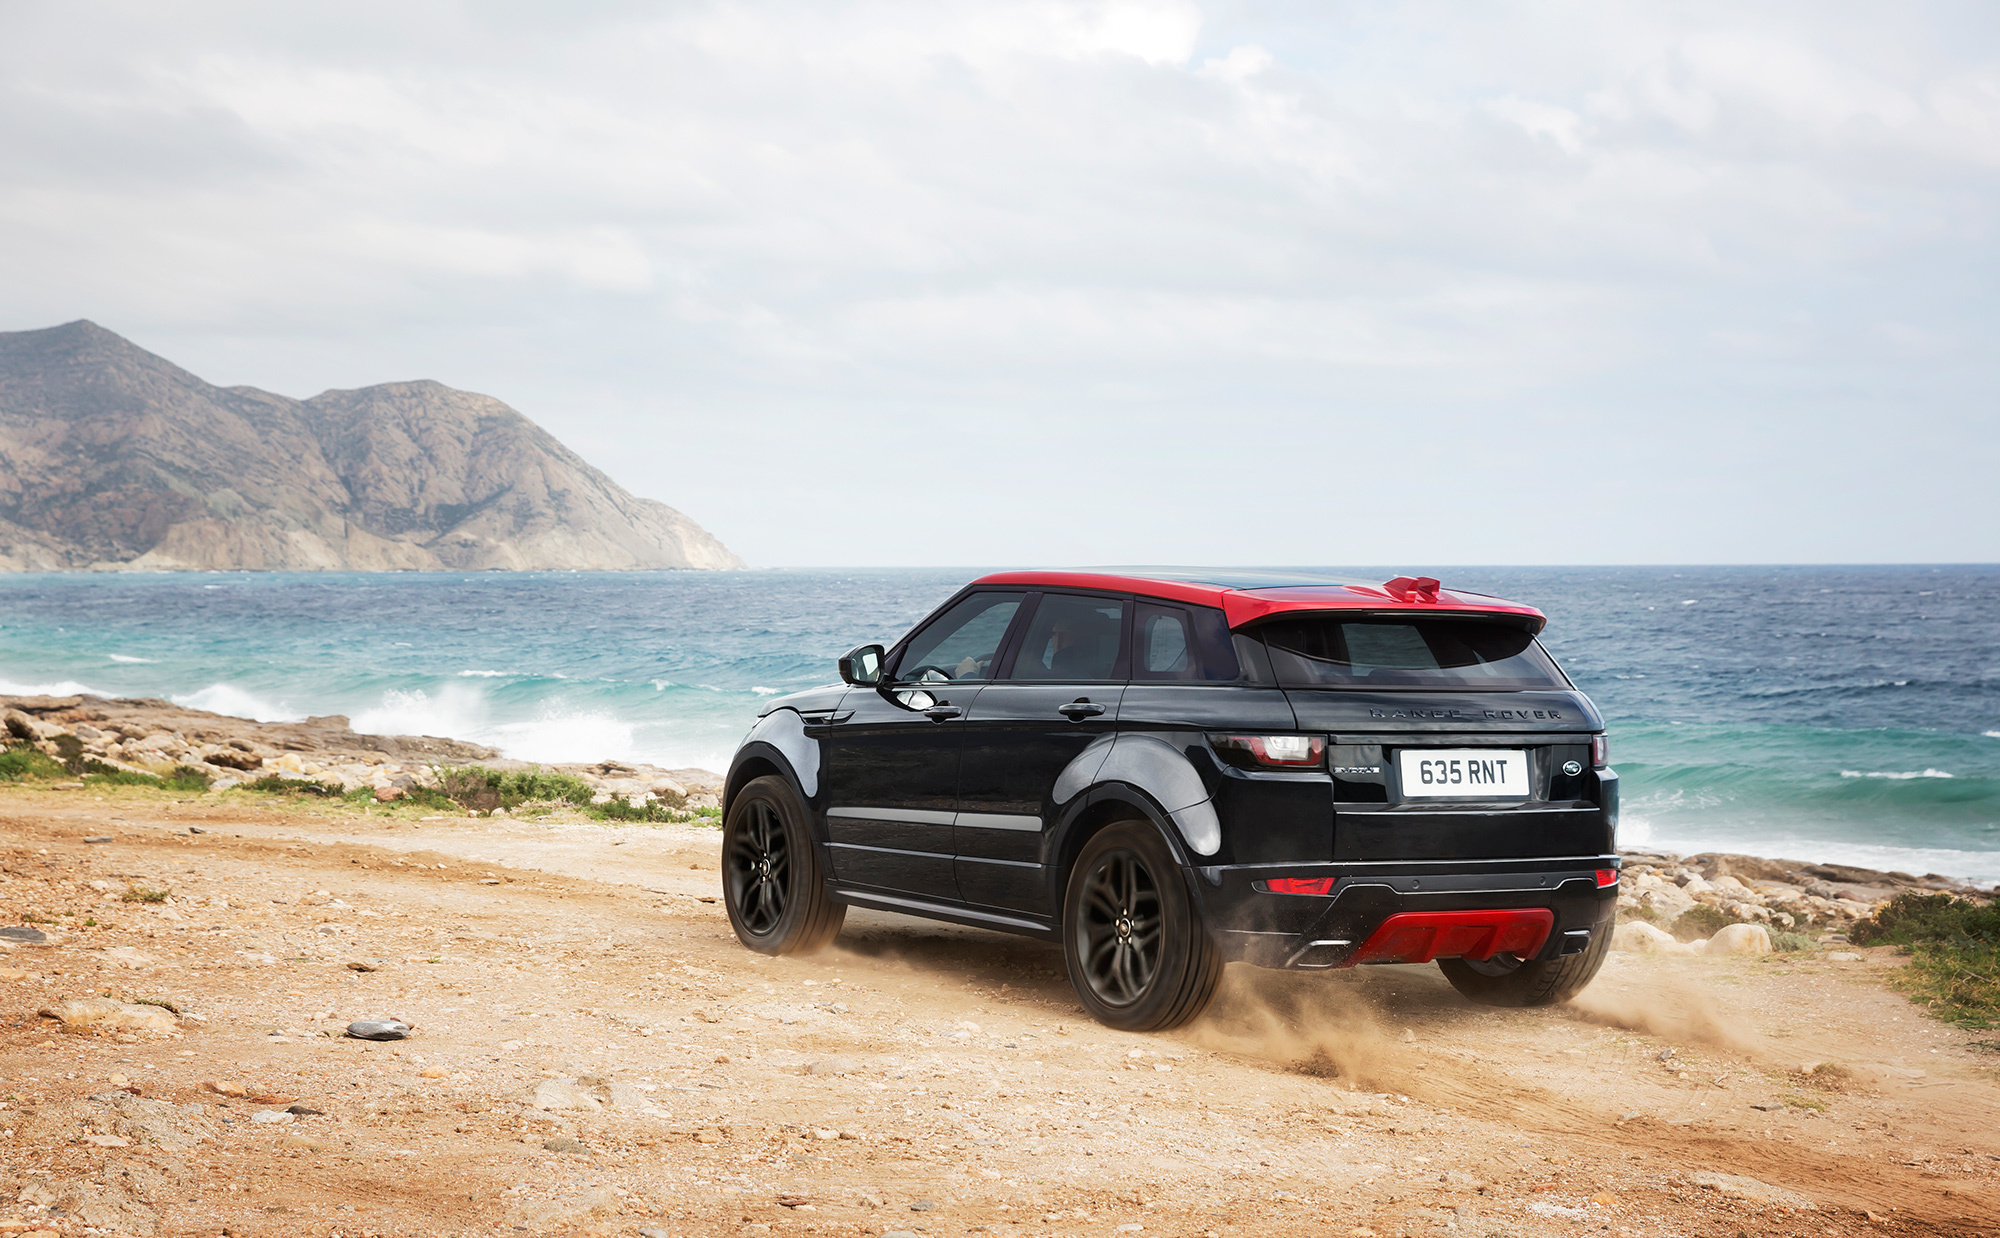 range rover evoque 2017 wallpapers images photos pictures. Black Bedroom Furniture Sets. Home Design Ideas